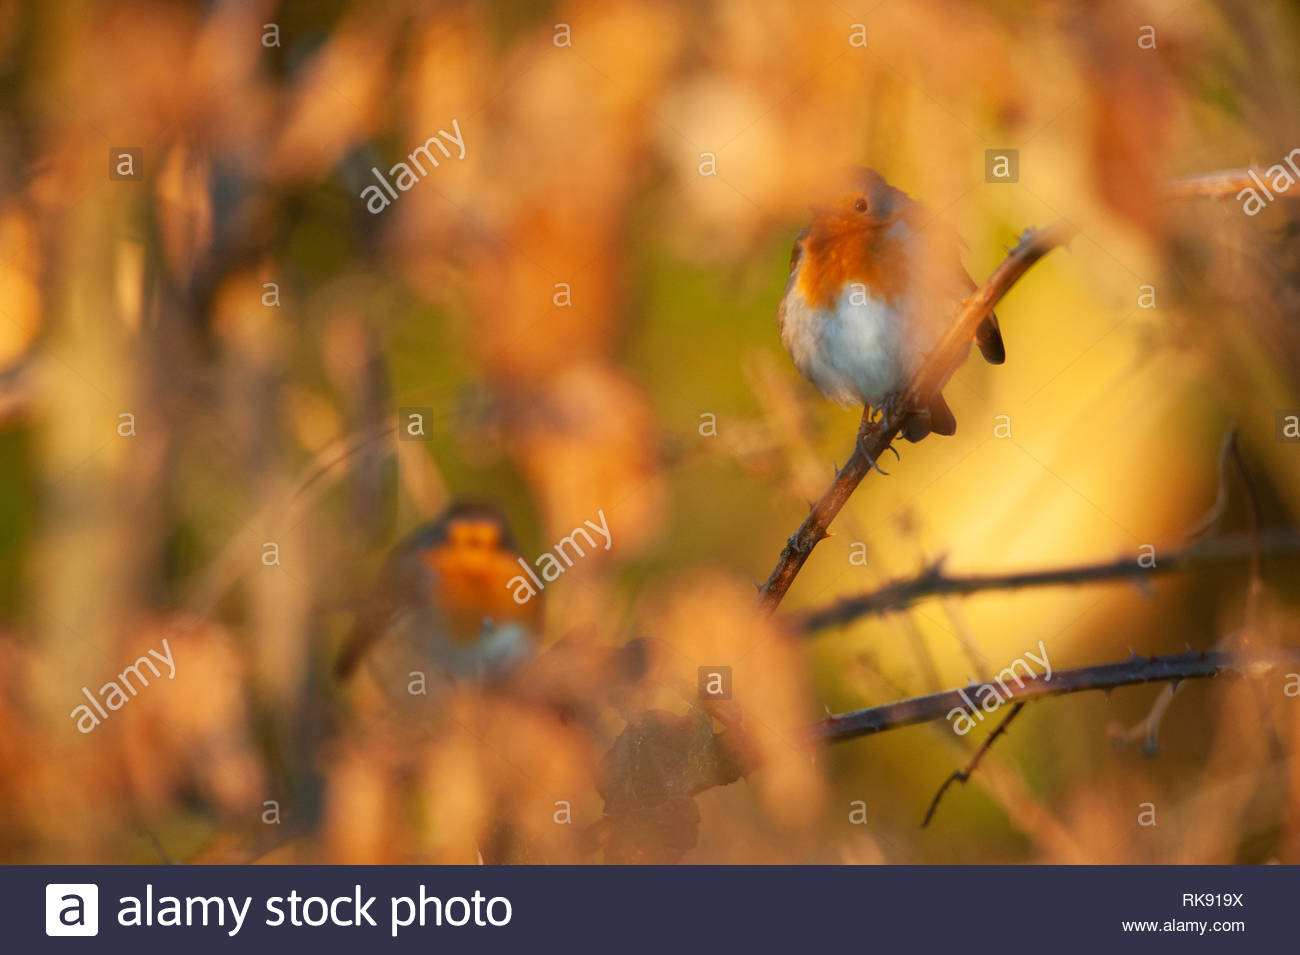 European Robins, Erithacus rubecula, perched in brambles with fluffed up plumage,warm their bodies in morning sunshine, Hampstead Heath,United Kingdom Stock Photo